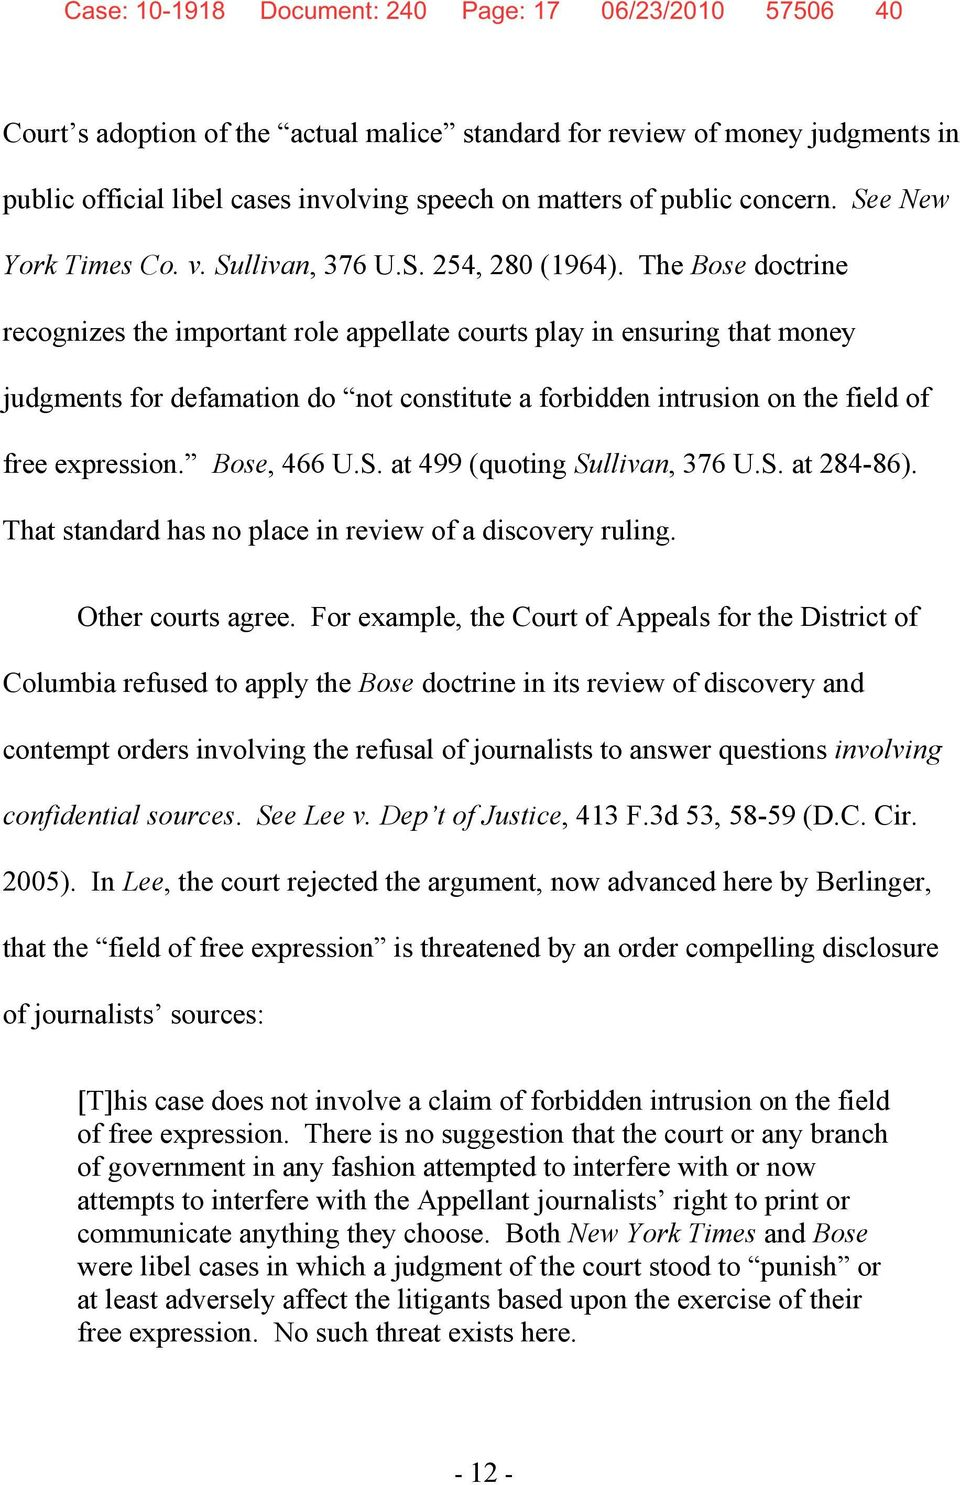 The Bose doctrine recognizes the important role appellate courts play in ensuring that money judgments for defamation do not constitute a forbidden intrusion on the field of free expression.